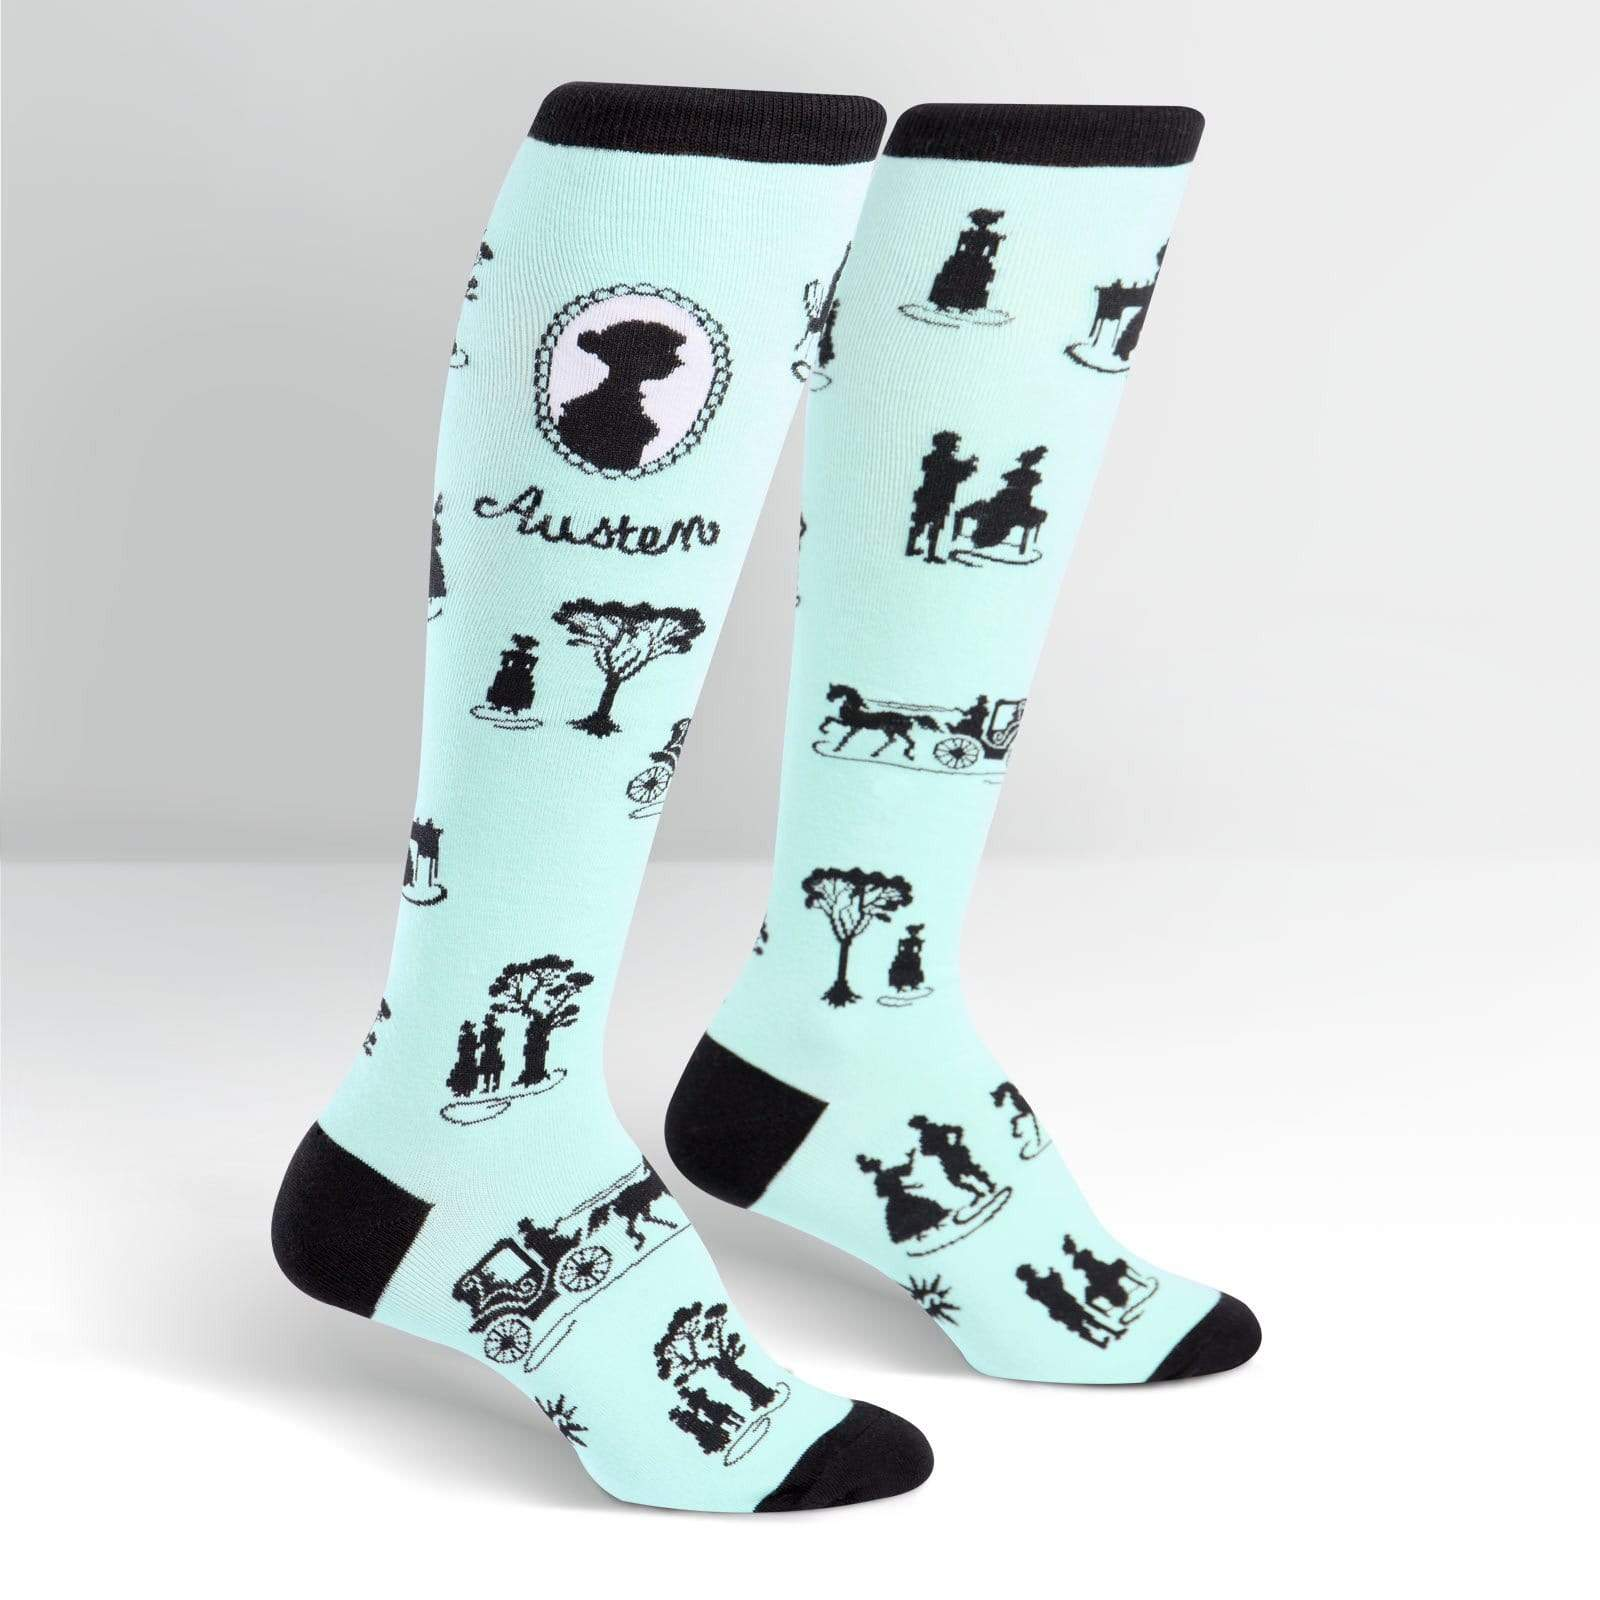 Jane Austen Socks Women's Knee High Sock Teal